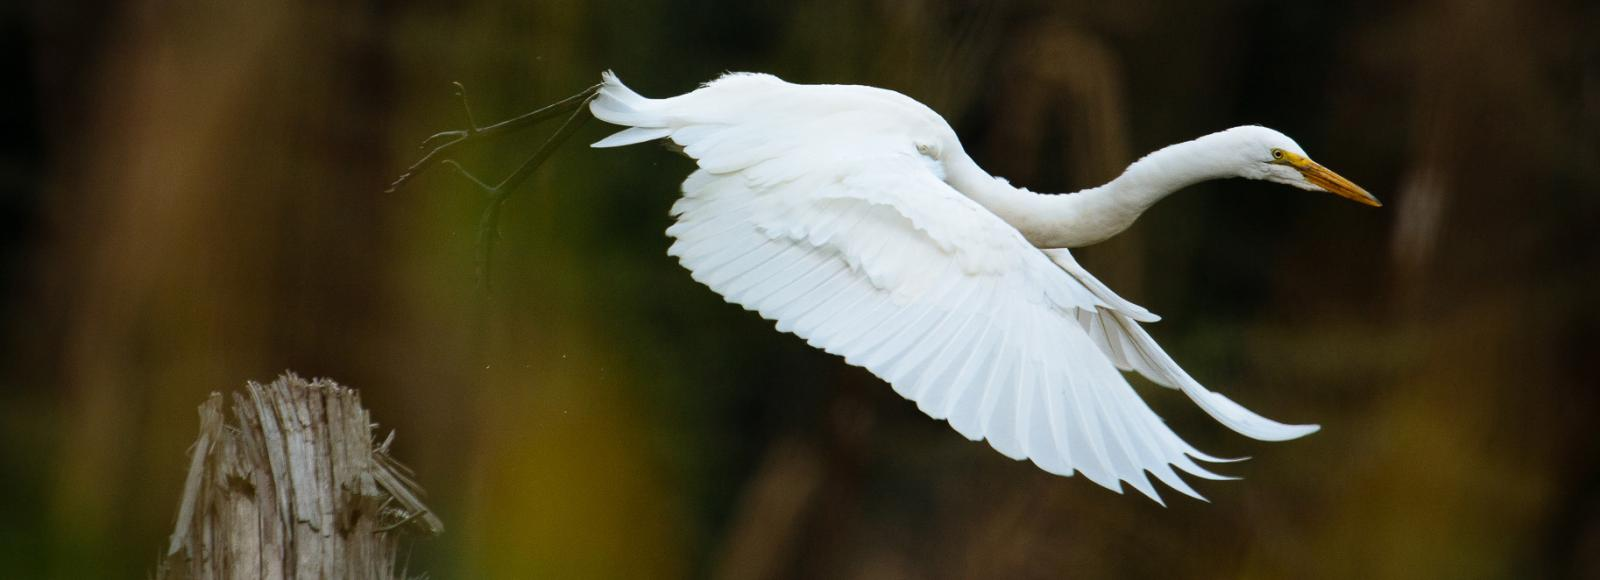 A Great Egret, a large white bird, takes flight